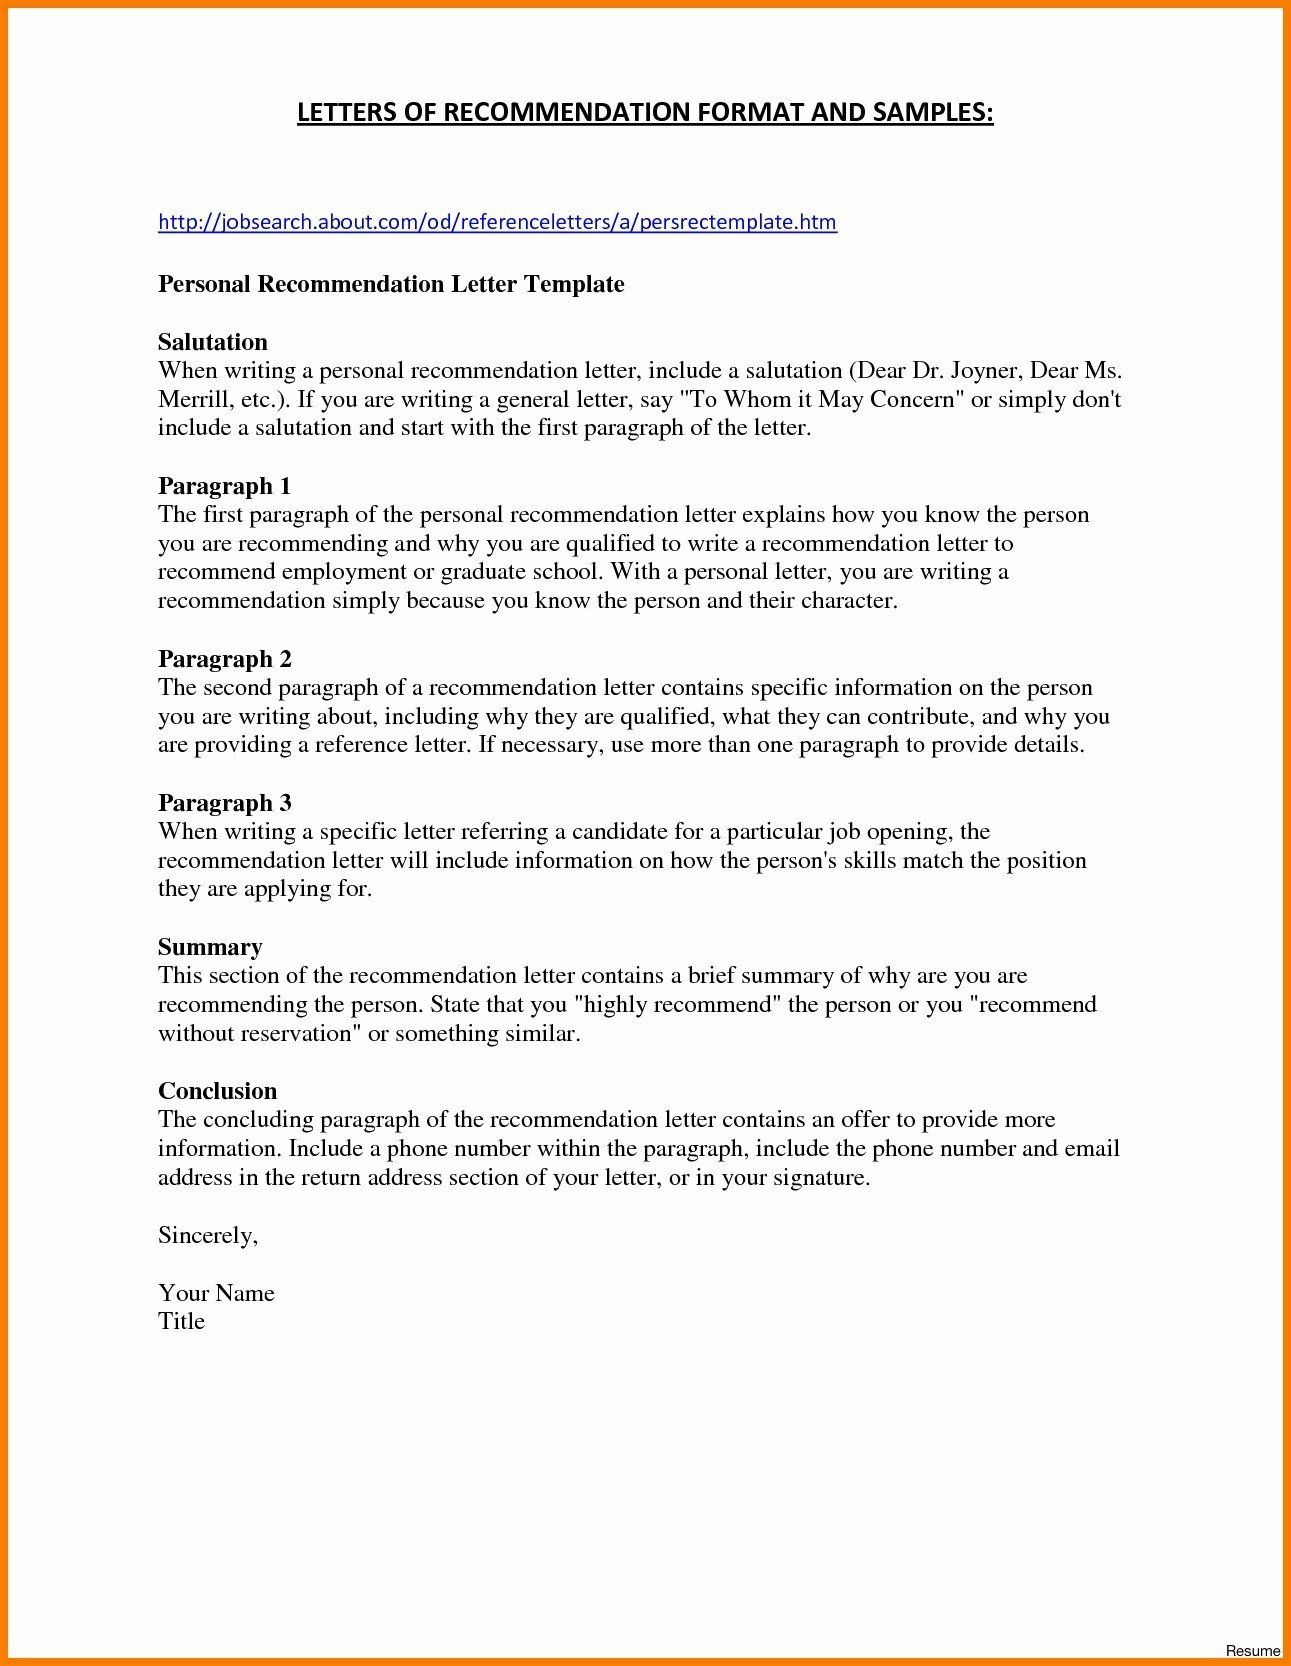 Please See Attached My Resume Best Of 30 Please Find Attached My Resume For Your Review And My Resume Resume Cover Letter For Resume